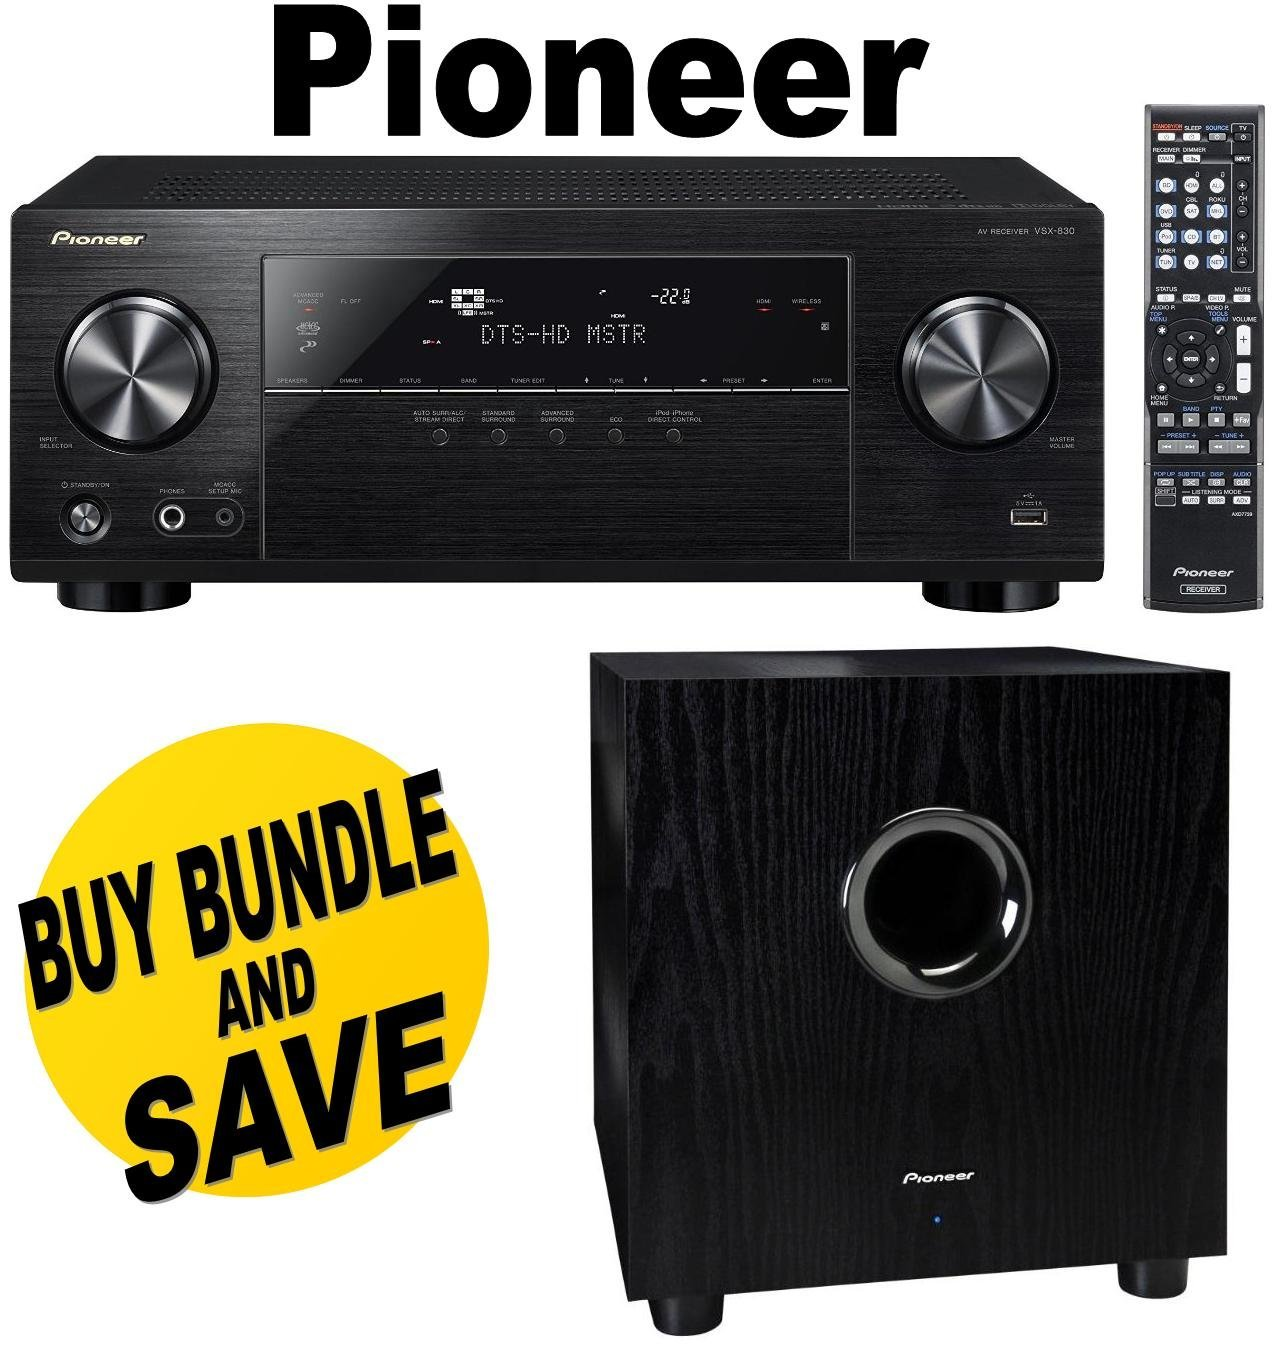 Pioneer VSX-830-K 5.2-Channel AV Receiver with Built-In Bluetooth and Wi-Fi (Black) + Pioneer SW-8MK2 Andrew Jones Designed 100-Watt Powered Subwoofer Bundle